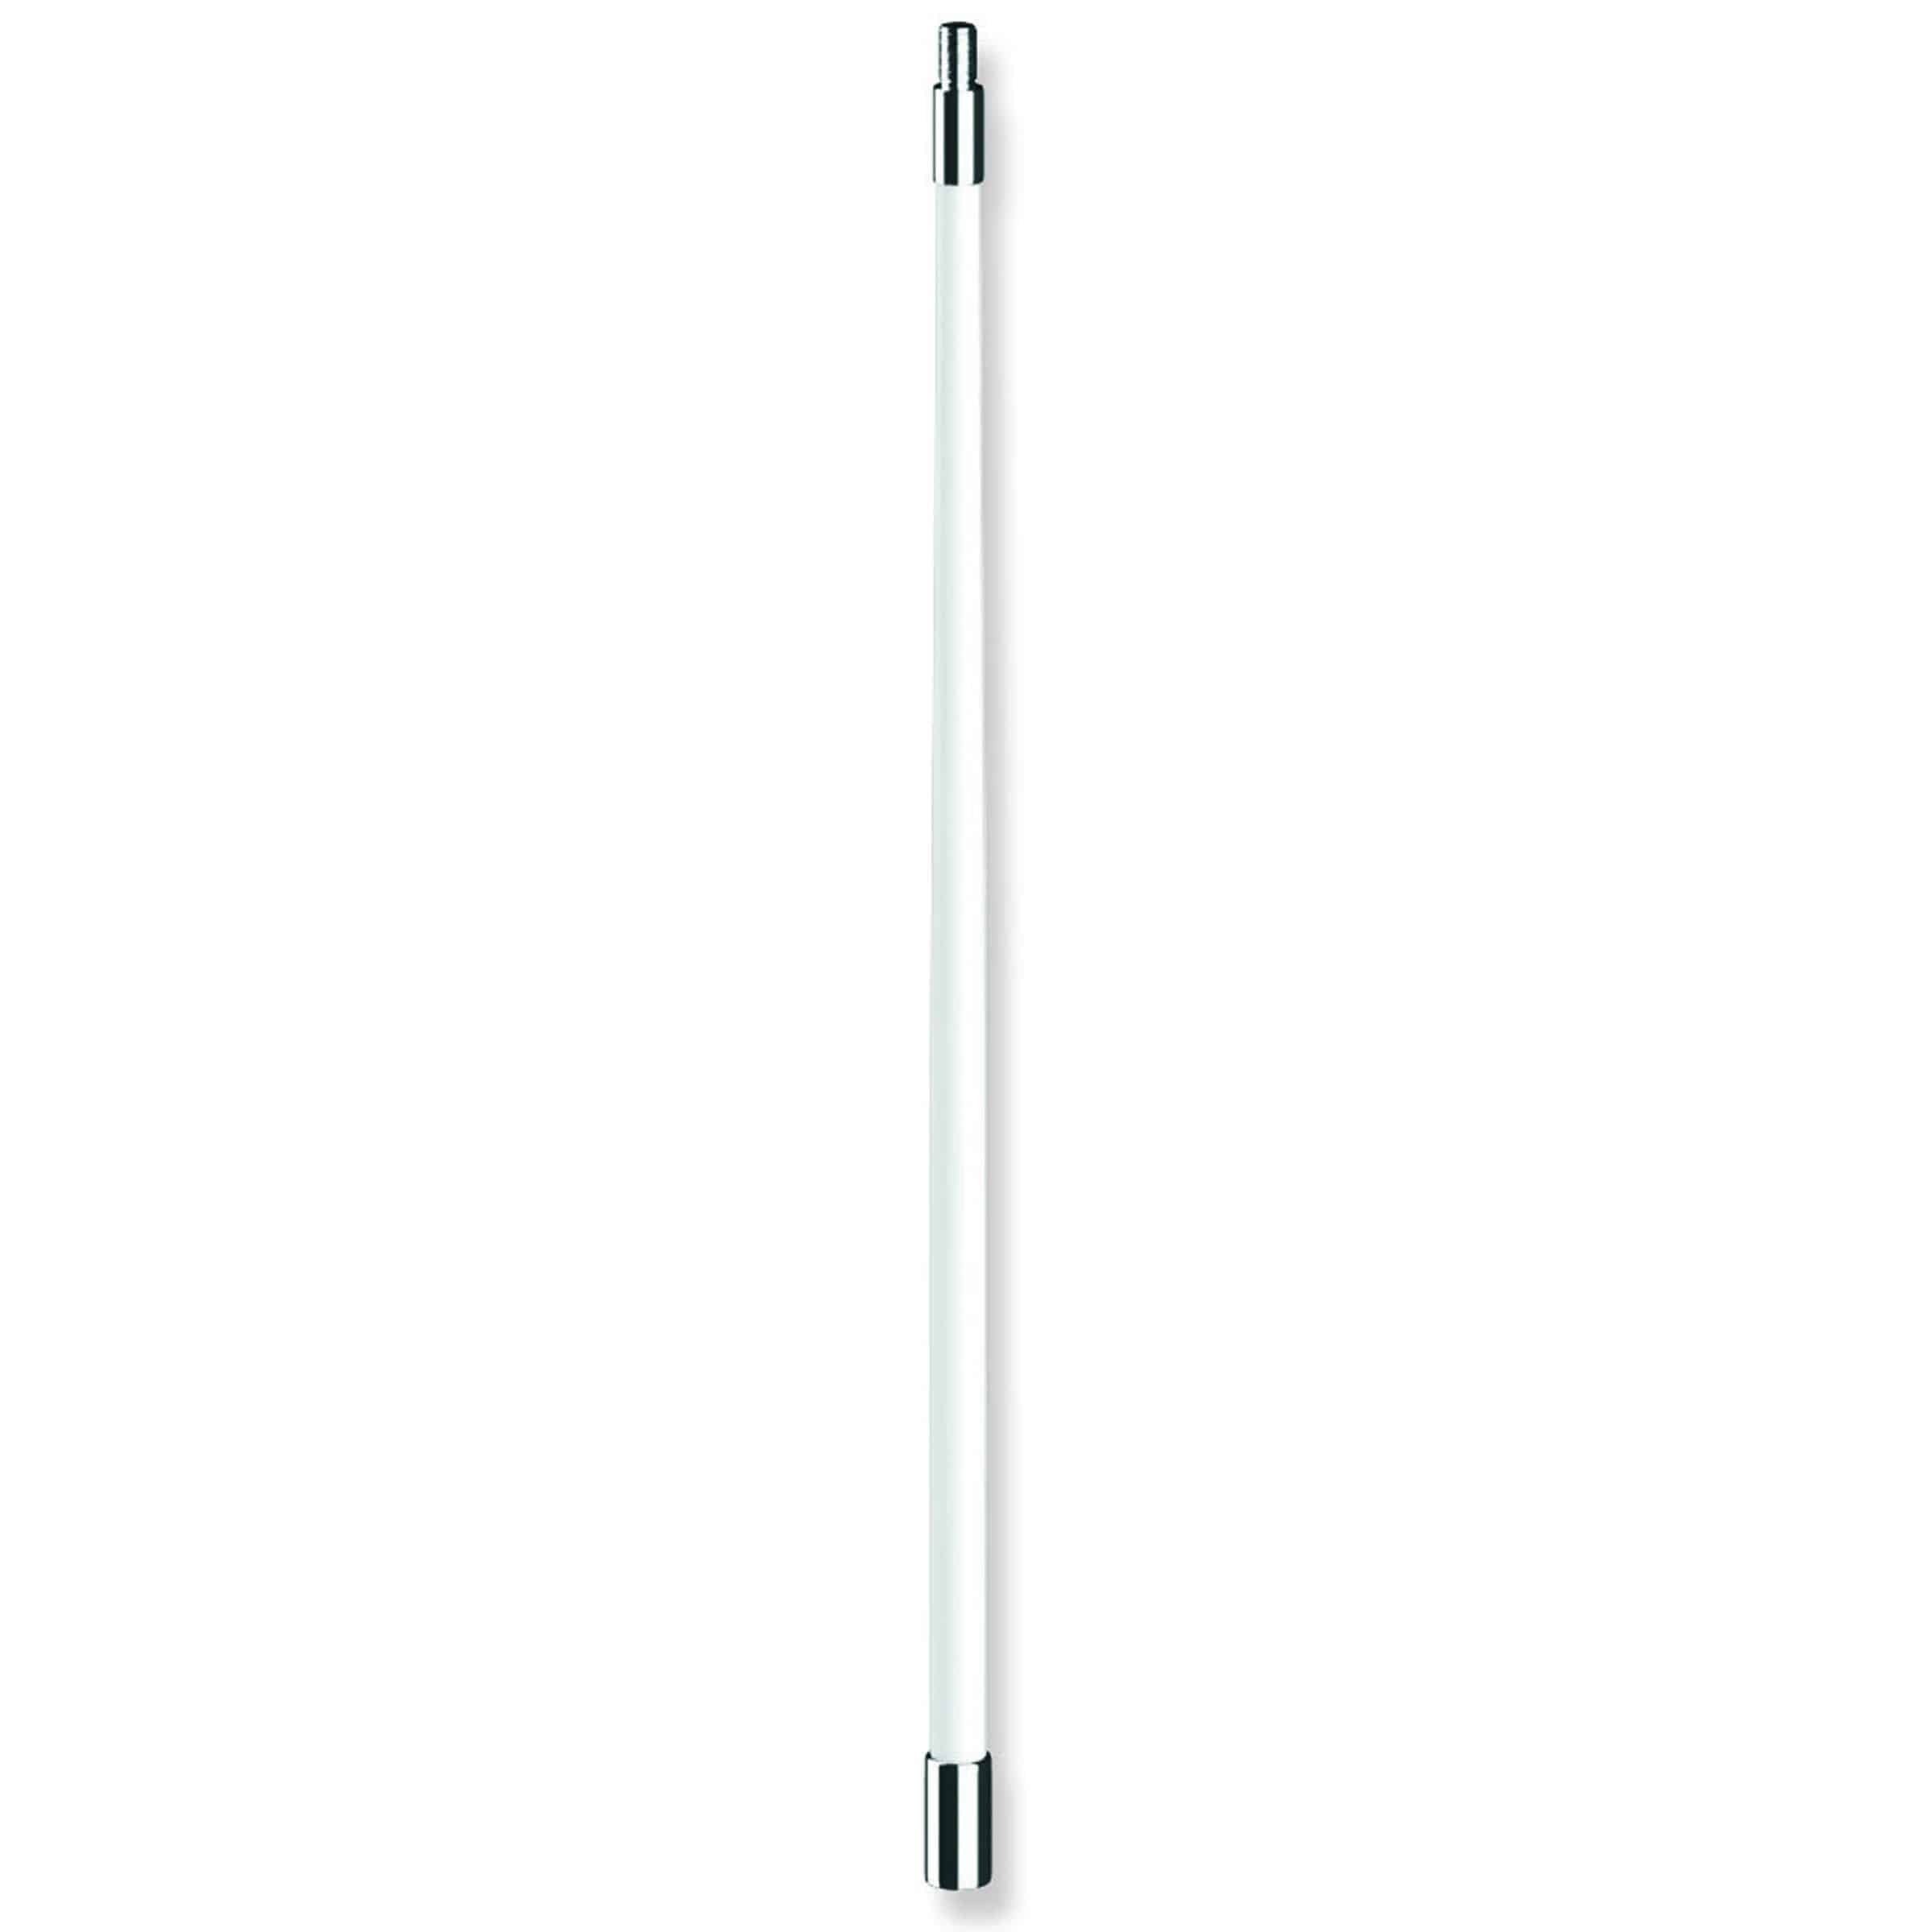 40084 - Shakespeare 4' Heavy Duty Antenna Extension Mast